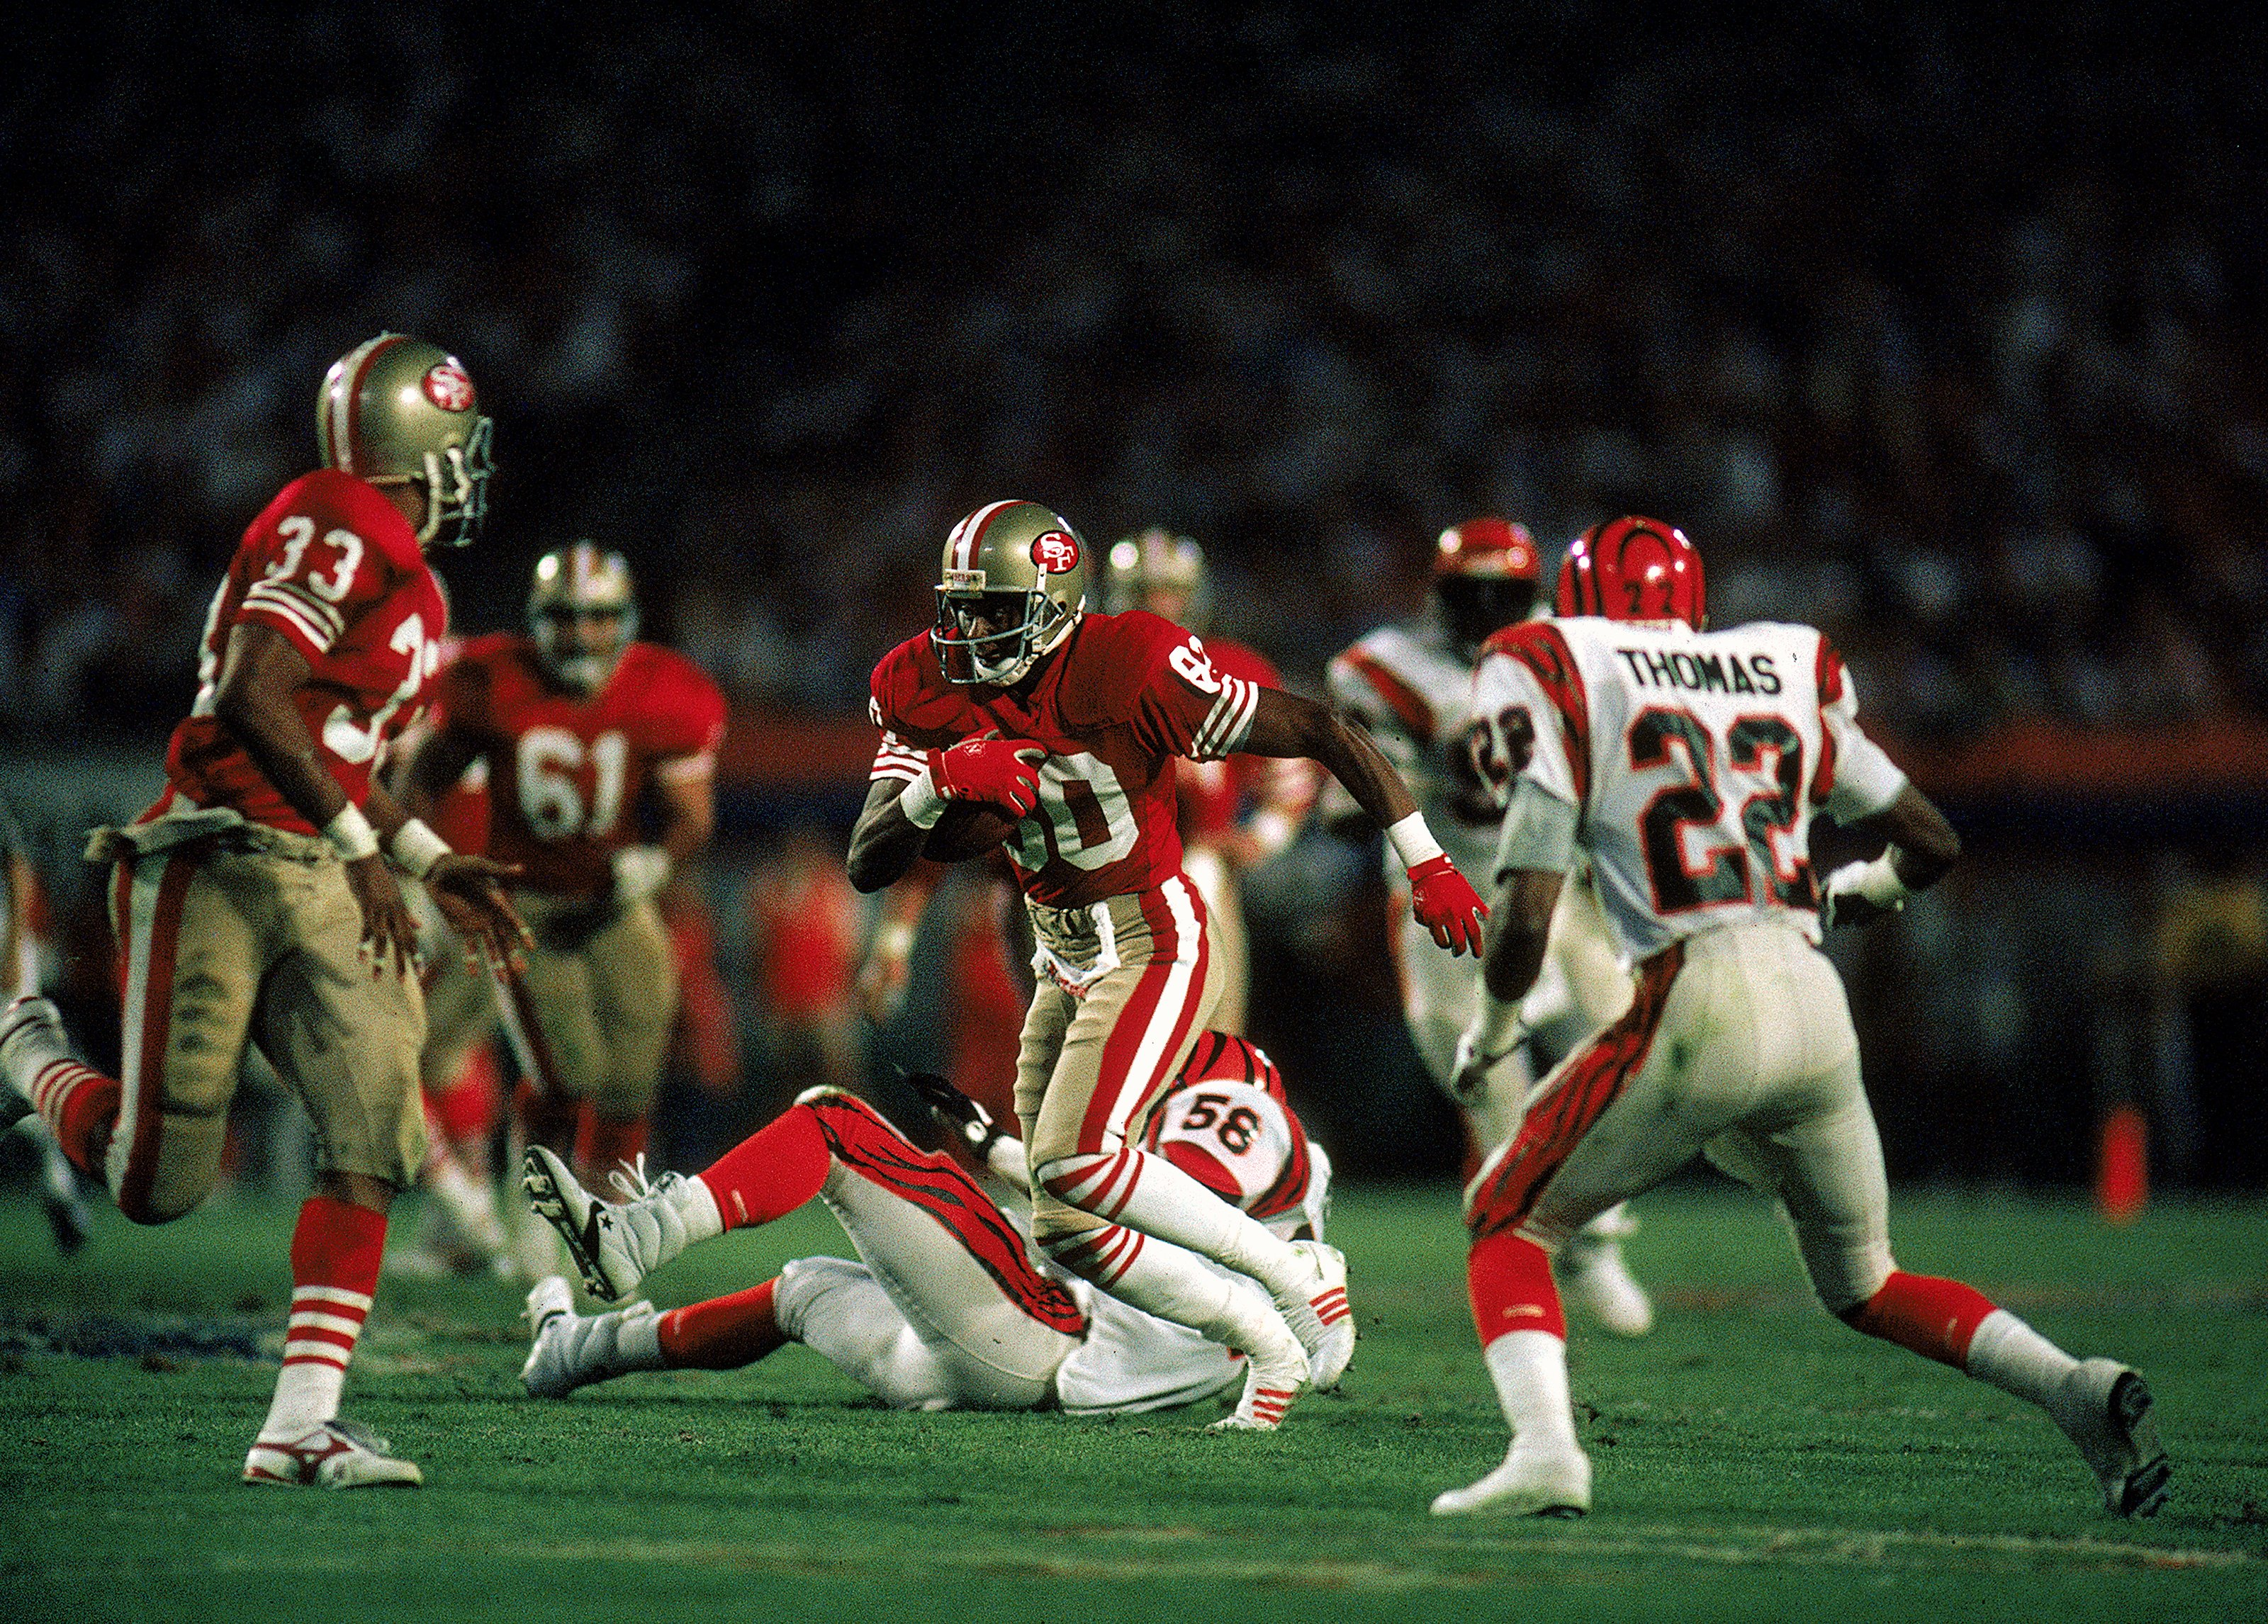 Jerry Rice #80 of the San Francisco 49ers carries the ball during the Super Bowl XXIII against the Cincinnati Bengals, January 22, 1989. The 49ers defeated the Bengals 20-10. Mandatory Credit: Mike Powell  /Allsport